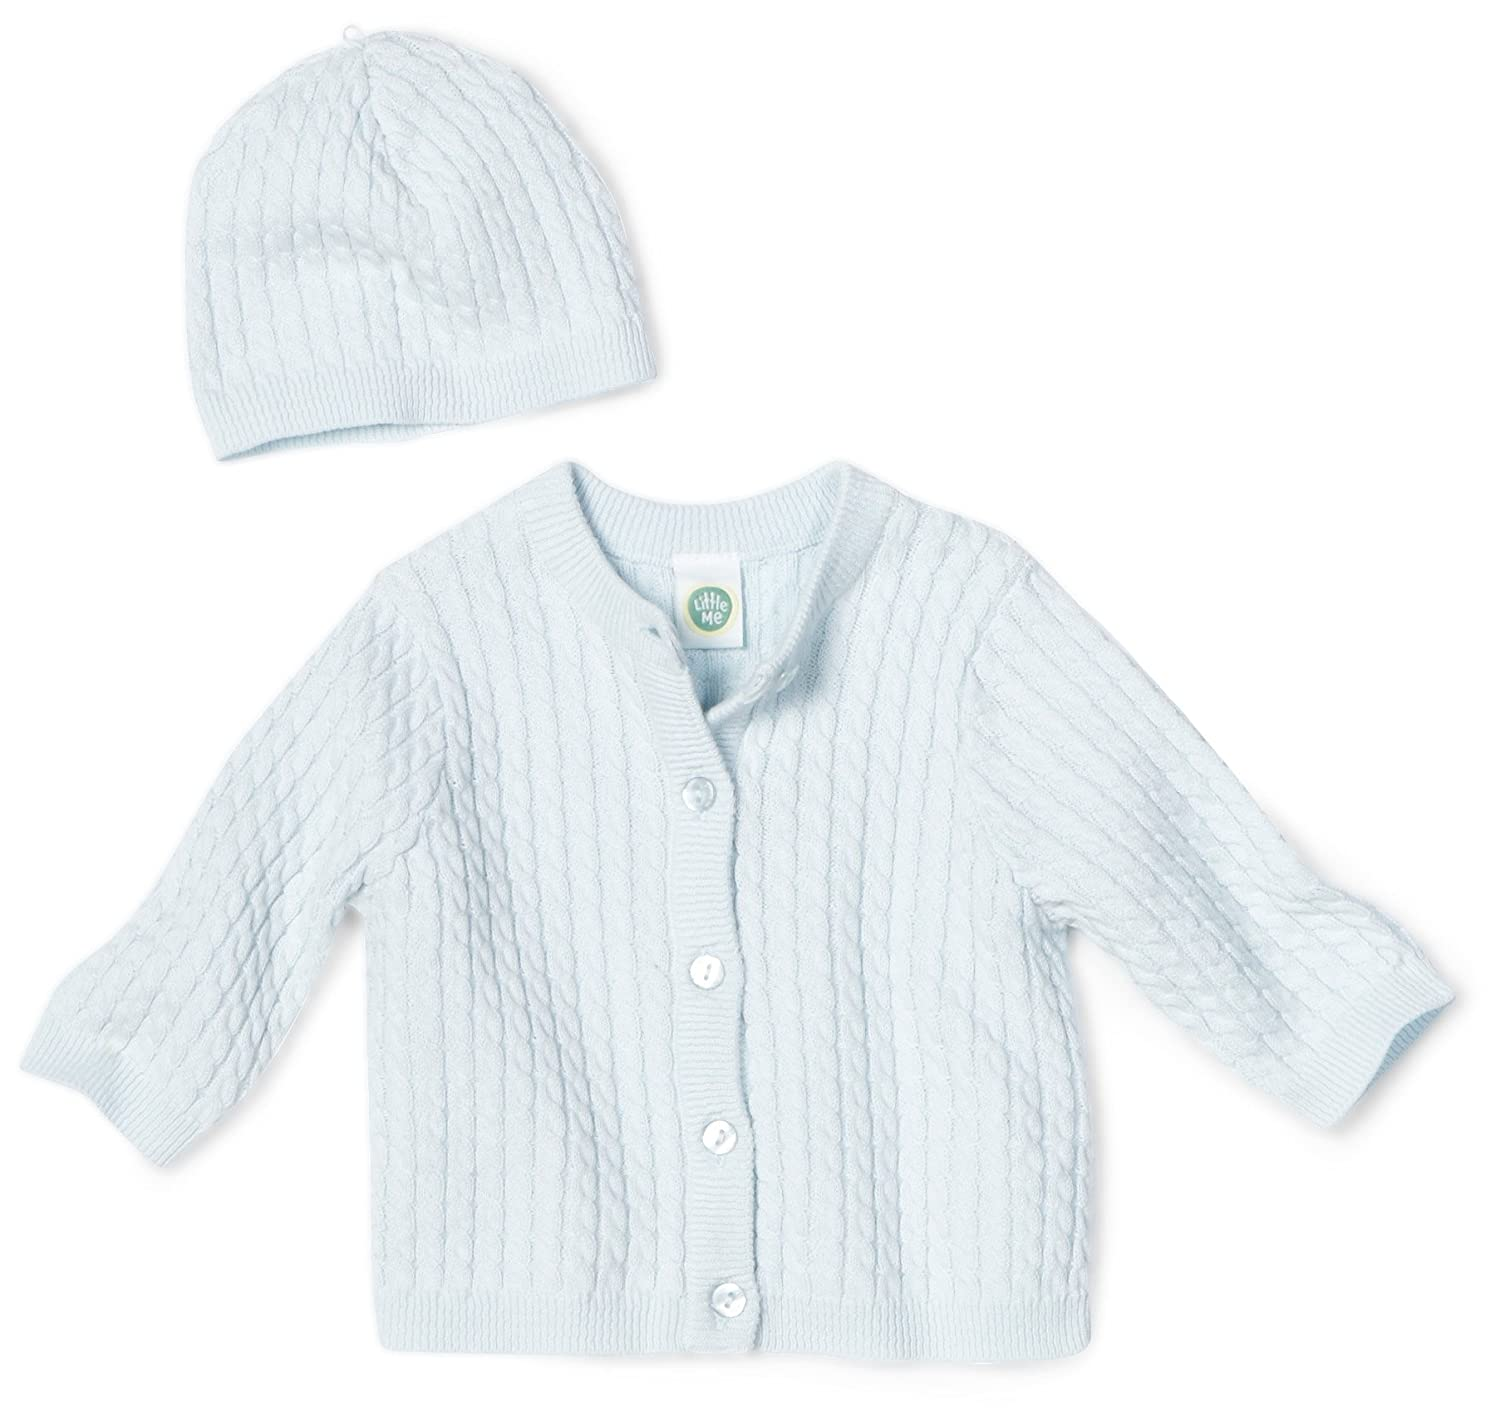 Cable Sweater, Hat and Hanger Set Adorable Cable Sweater